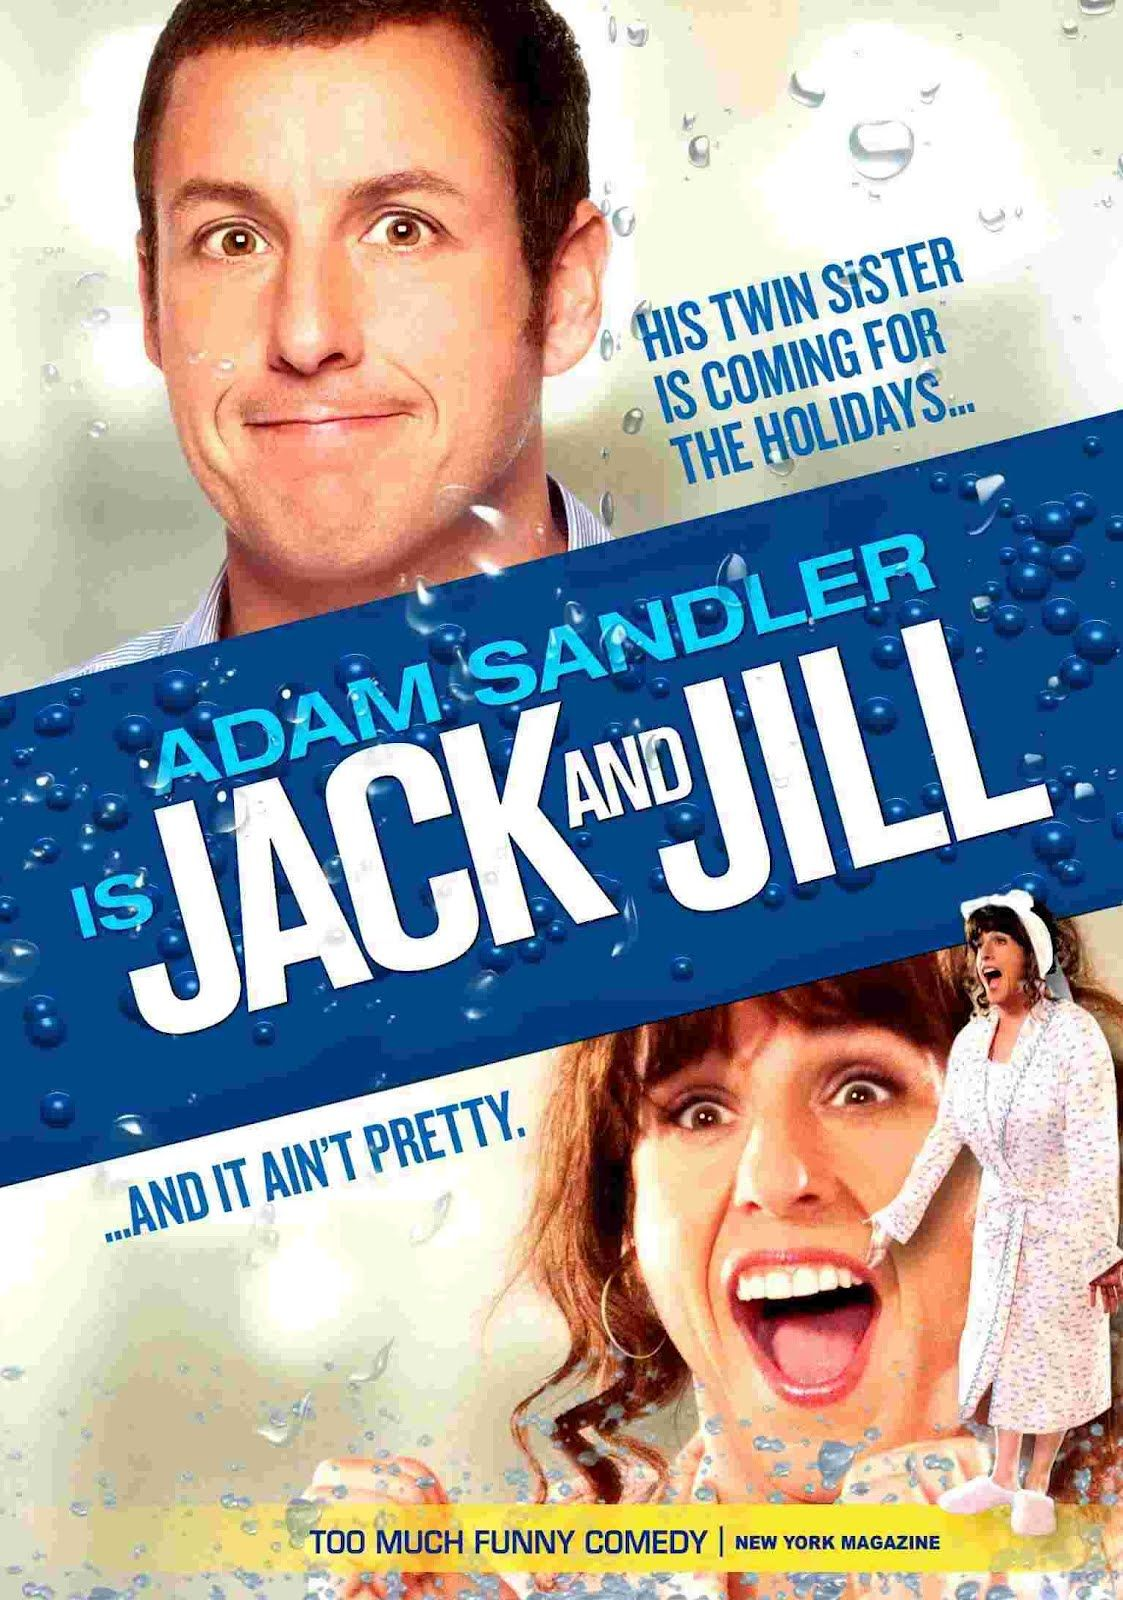 Jack and Jill. Funny comedy, Jack and jill, I movie